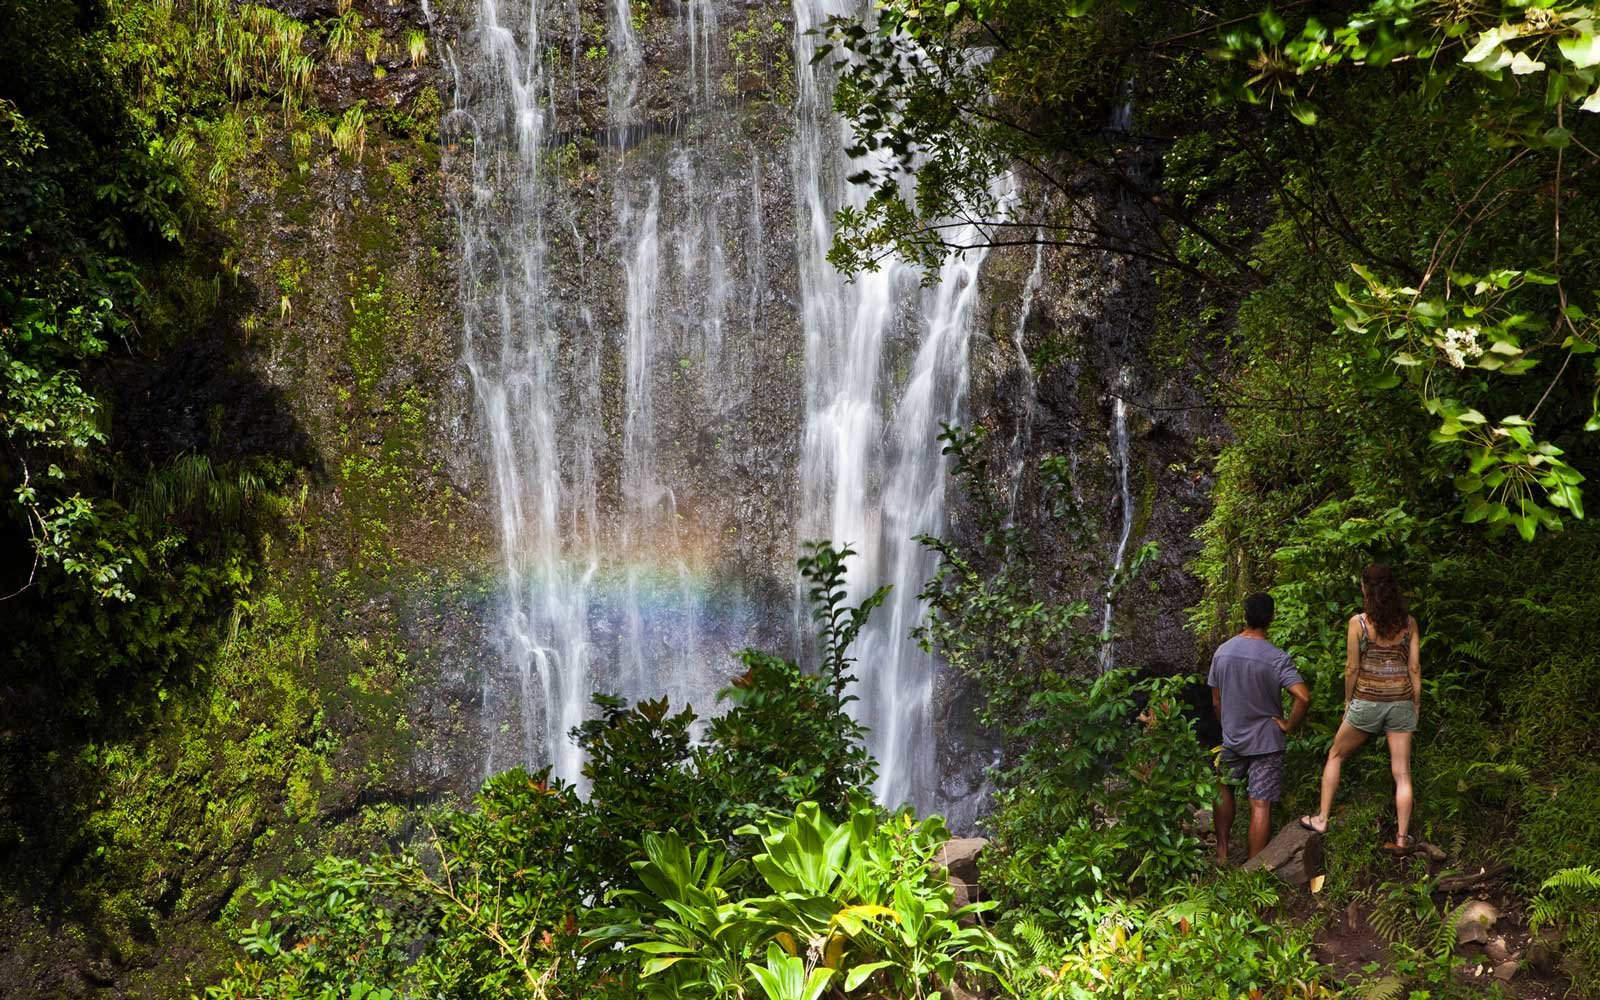 Couple enjoying Wailua Falls